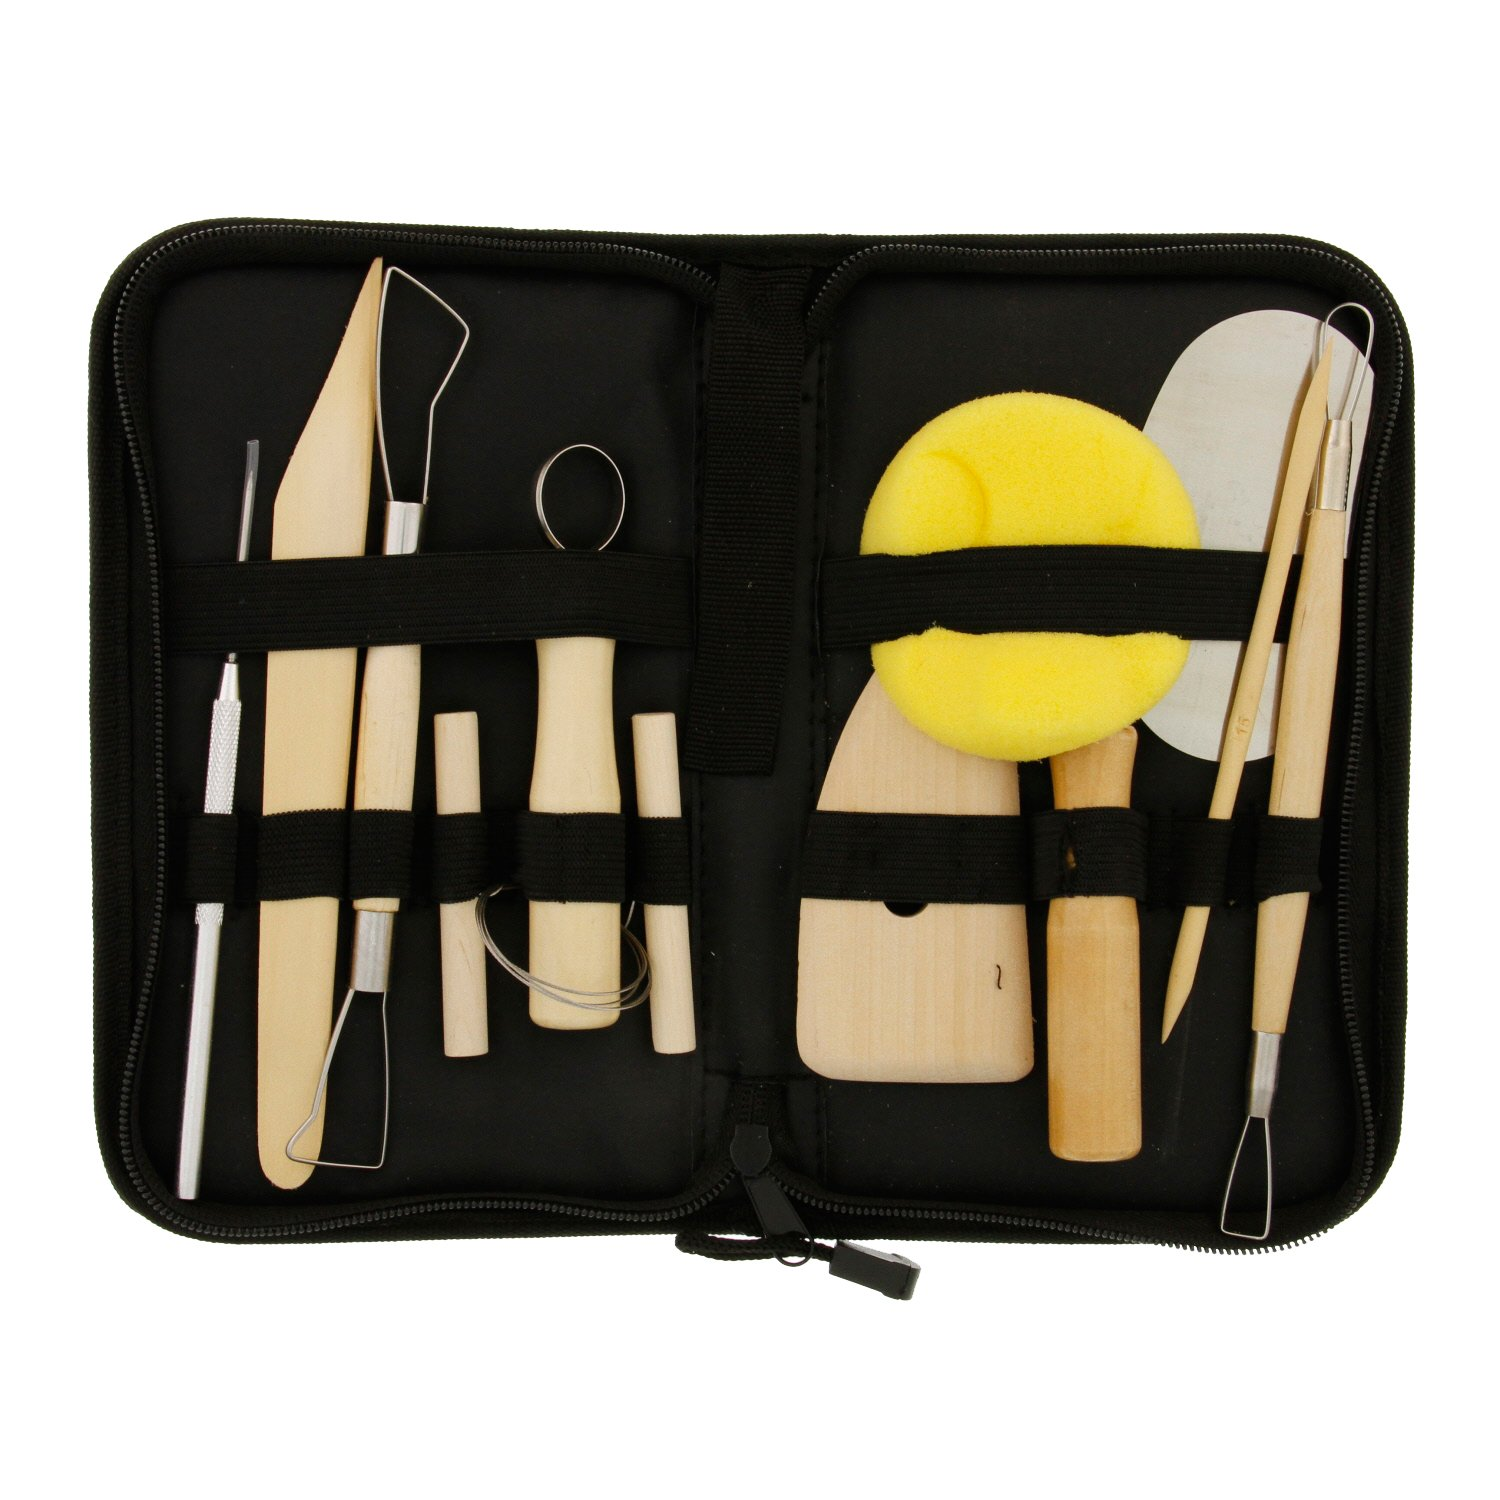 US Art Supply 12-Piece Pottery and Clay and Sculpting Tools Set with Canvas Zippered Case